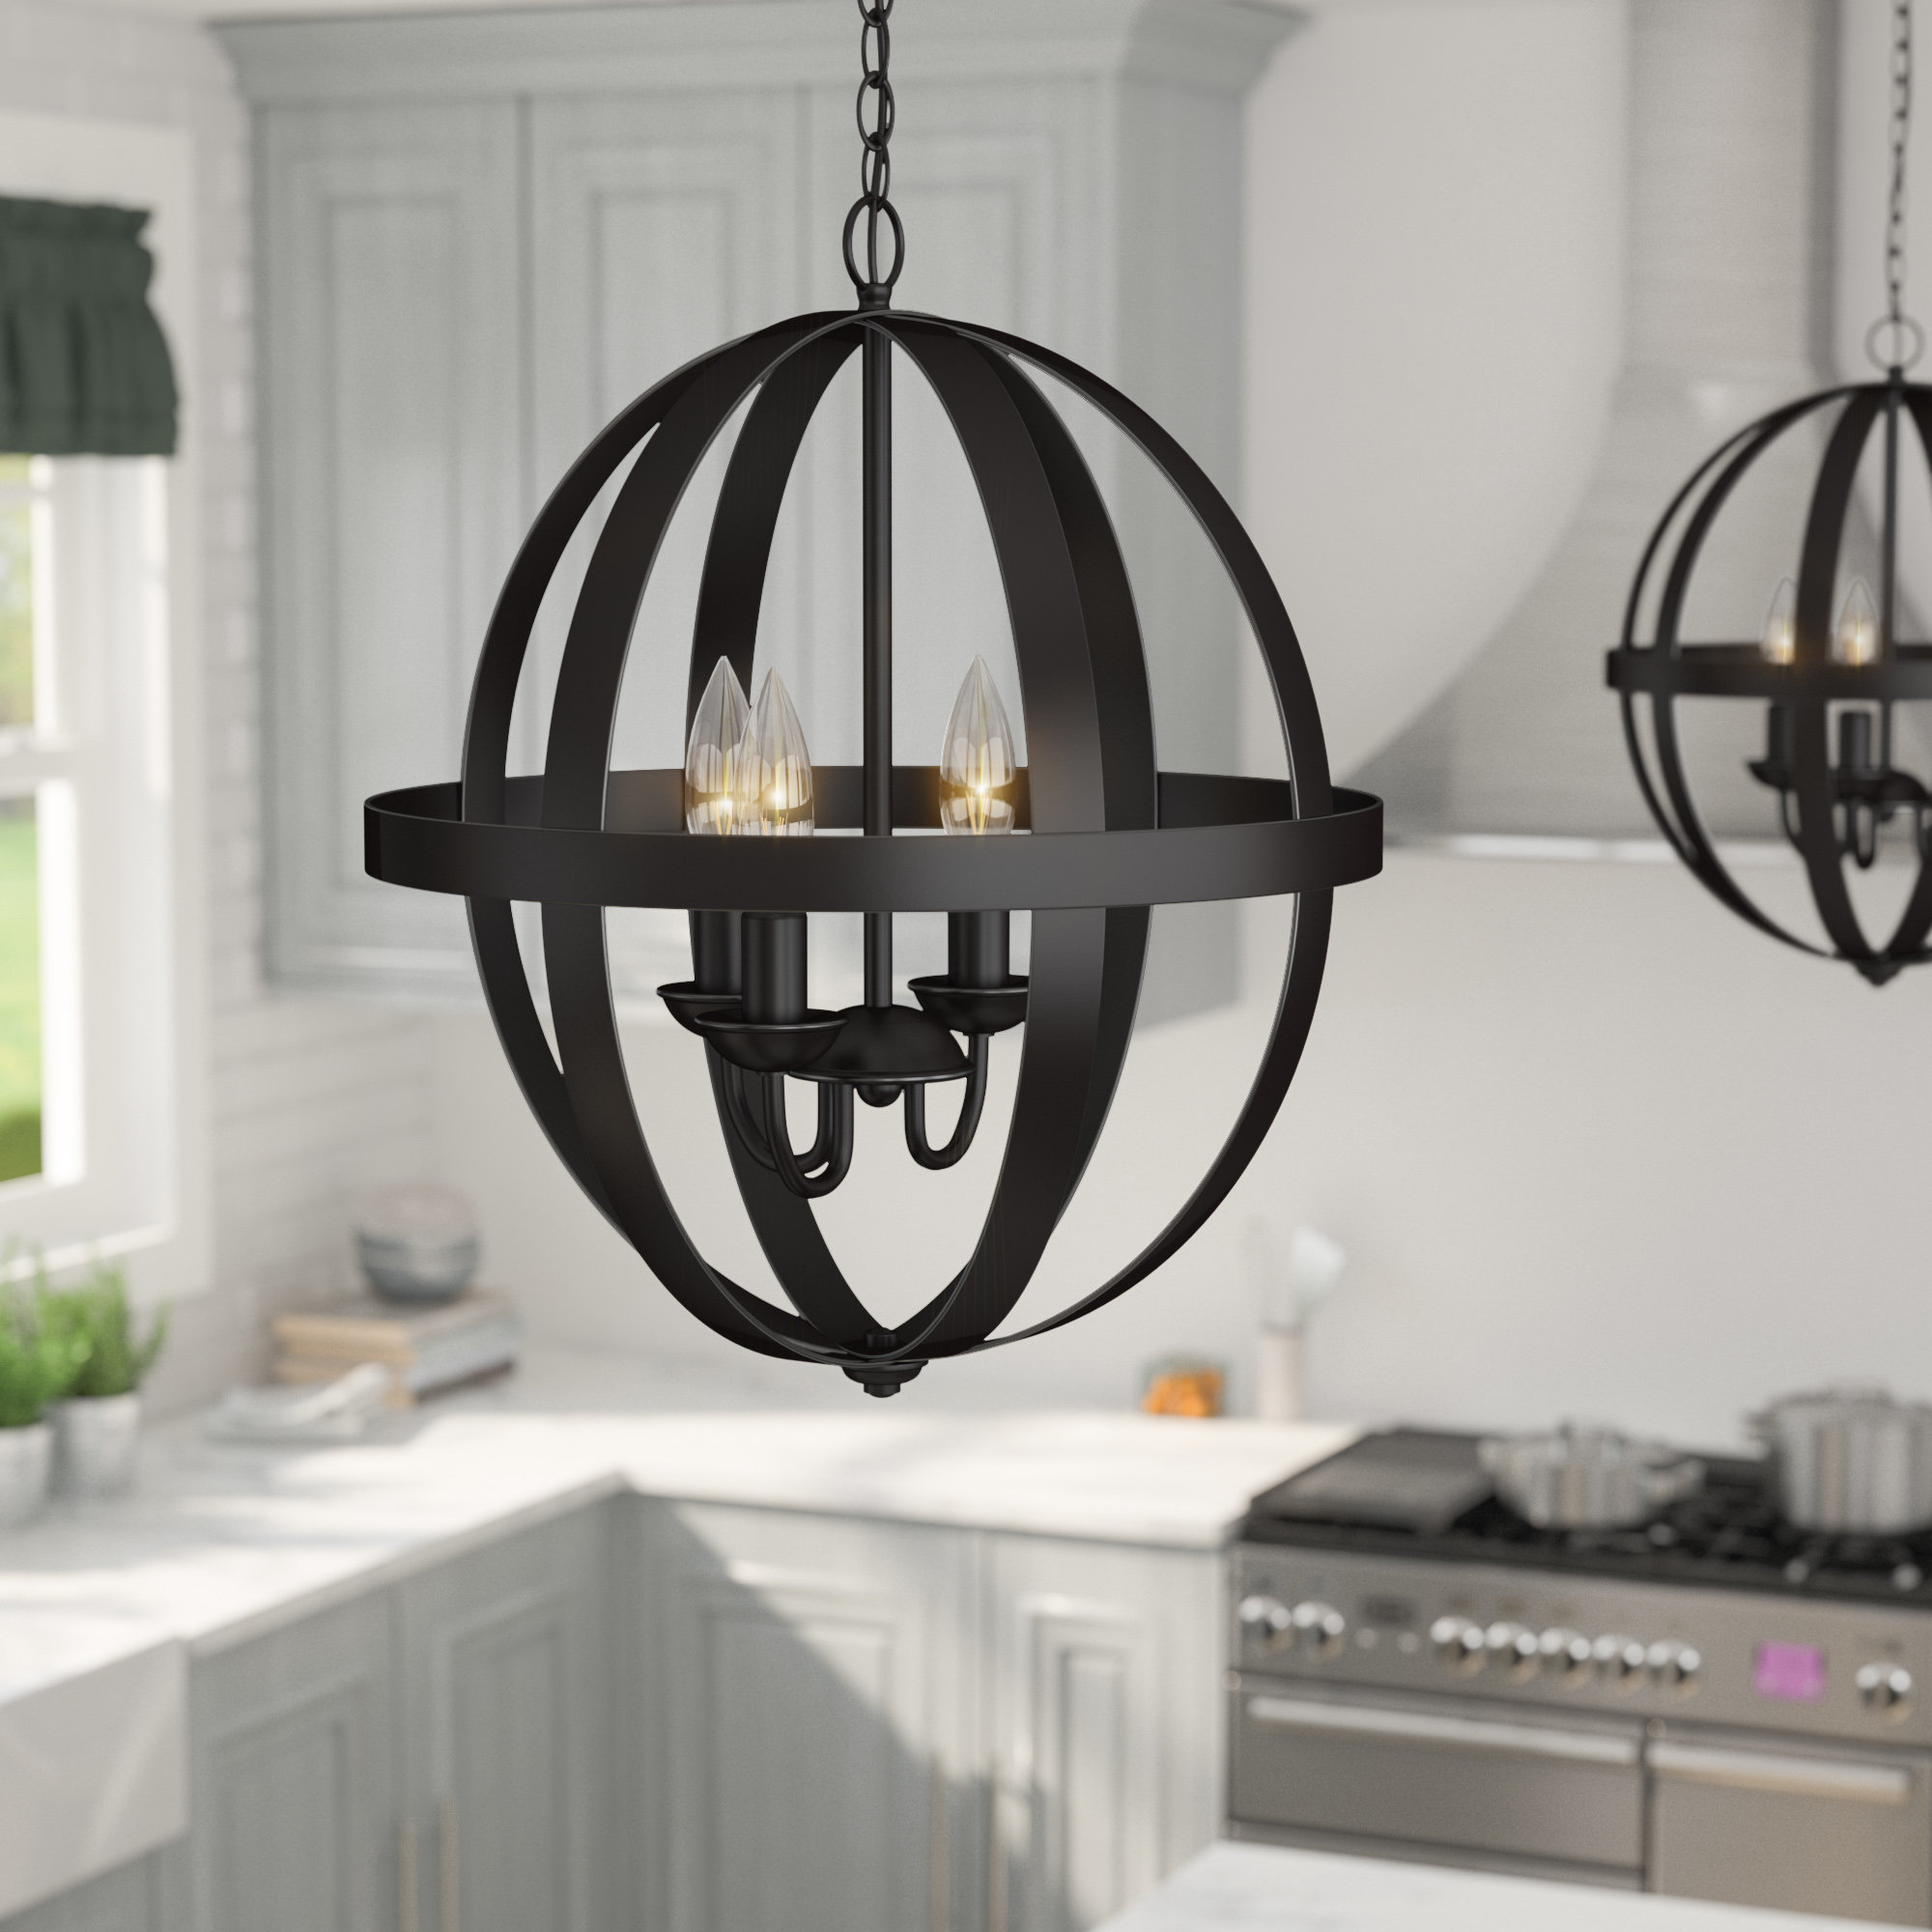 La Barge 3-Light Globe Chandelier regarding Joon 6-Light Globe Chandeliers (Image 19 of 30)